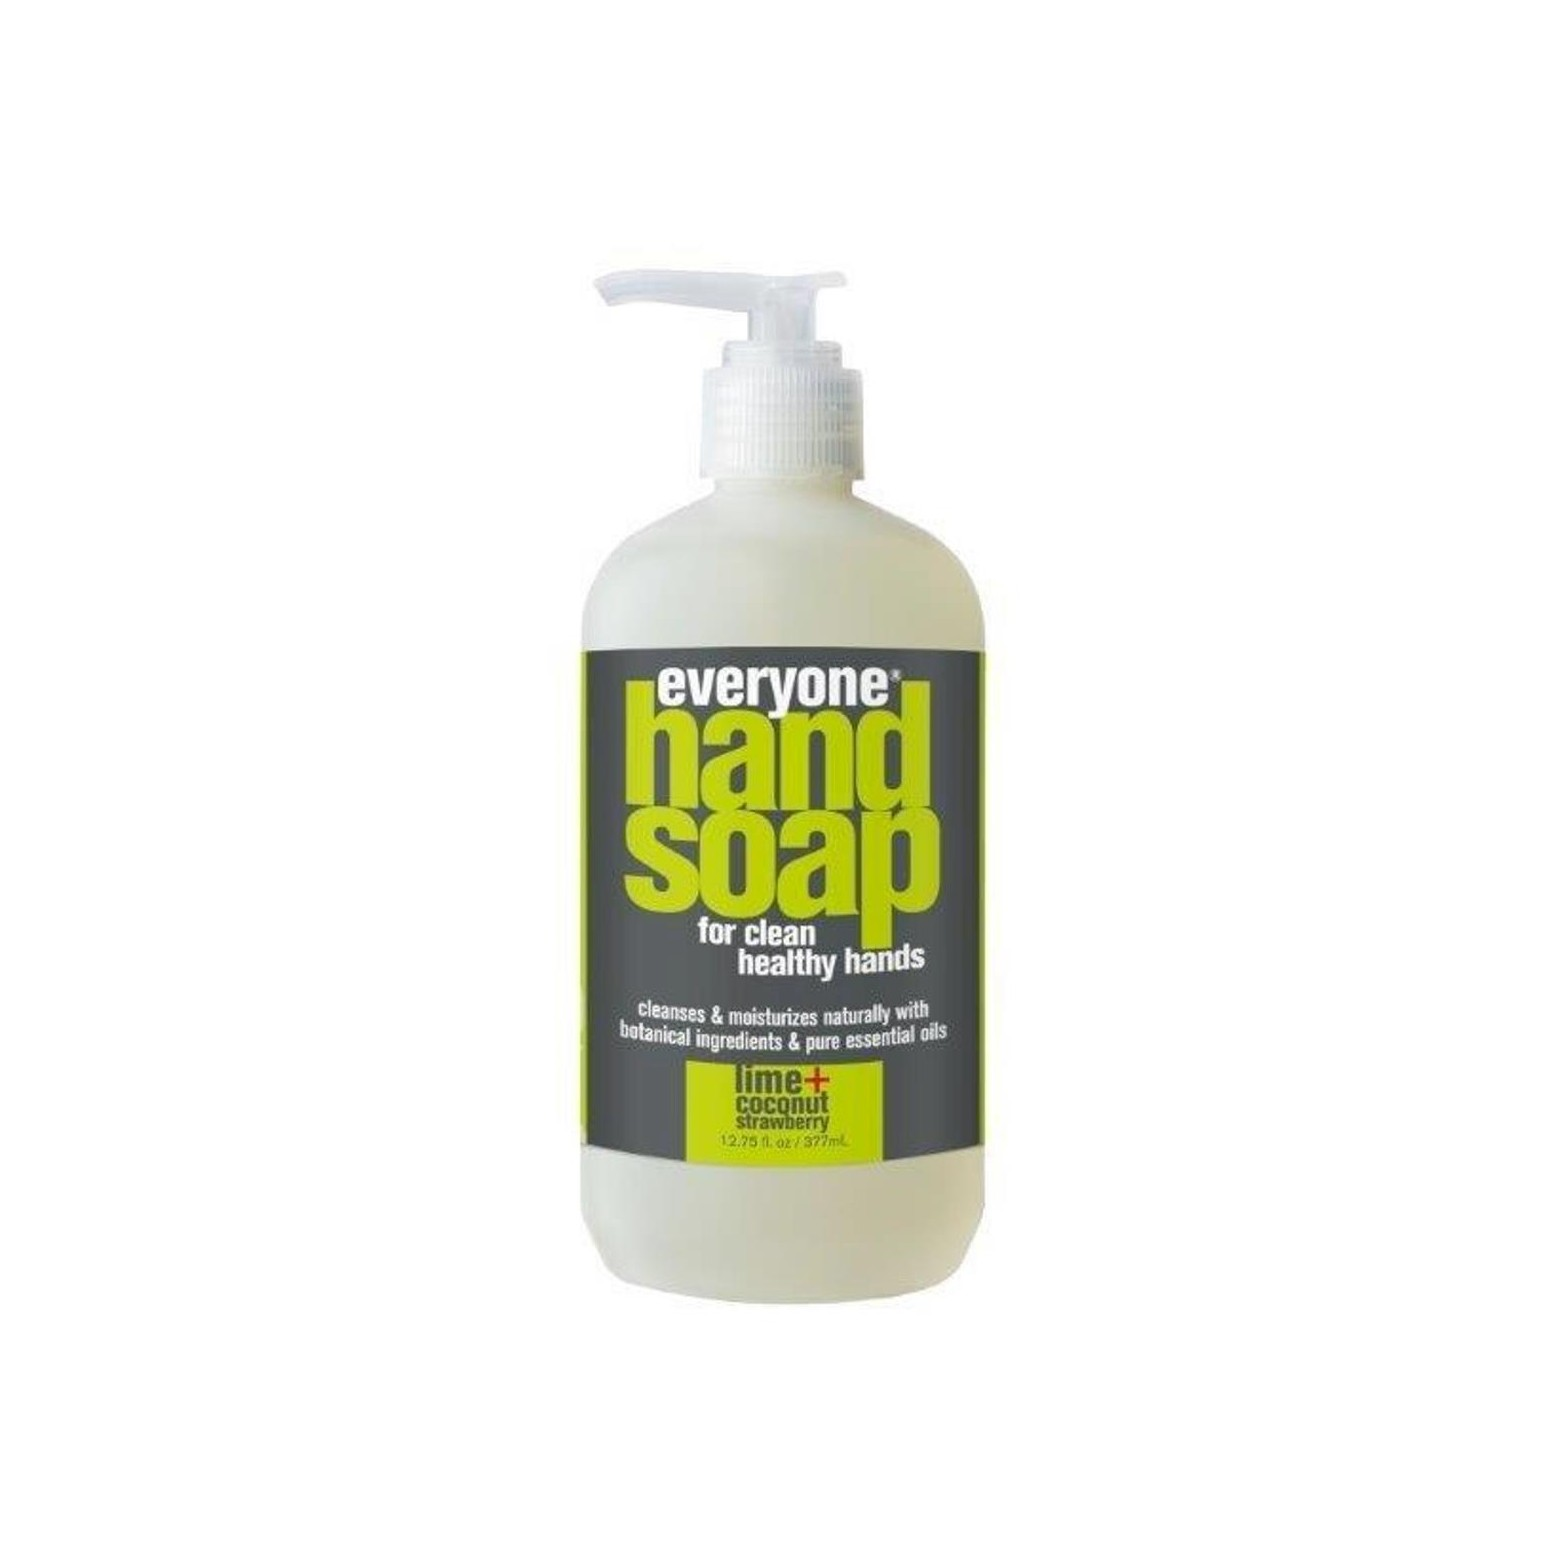 Everyone Lime Coconut Strawberry Hand Soap, 12 oz.